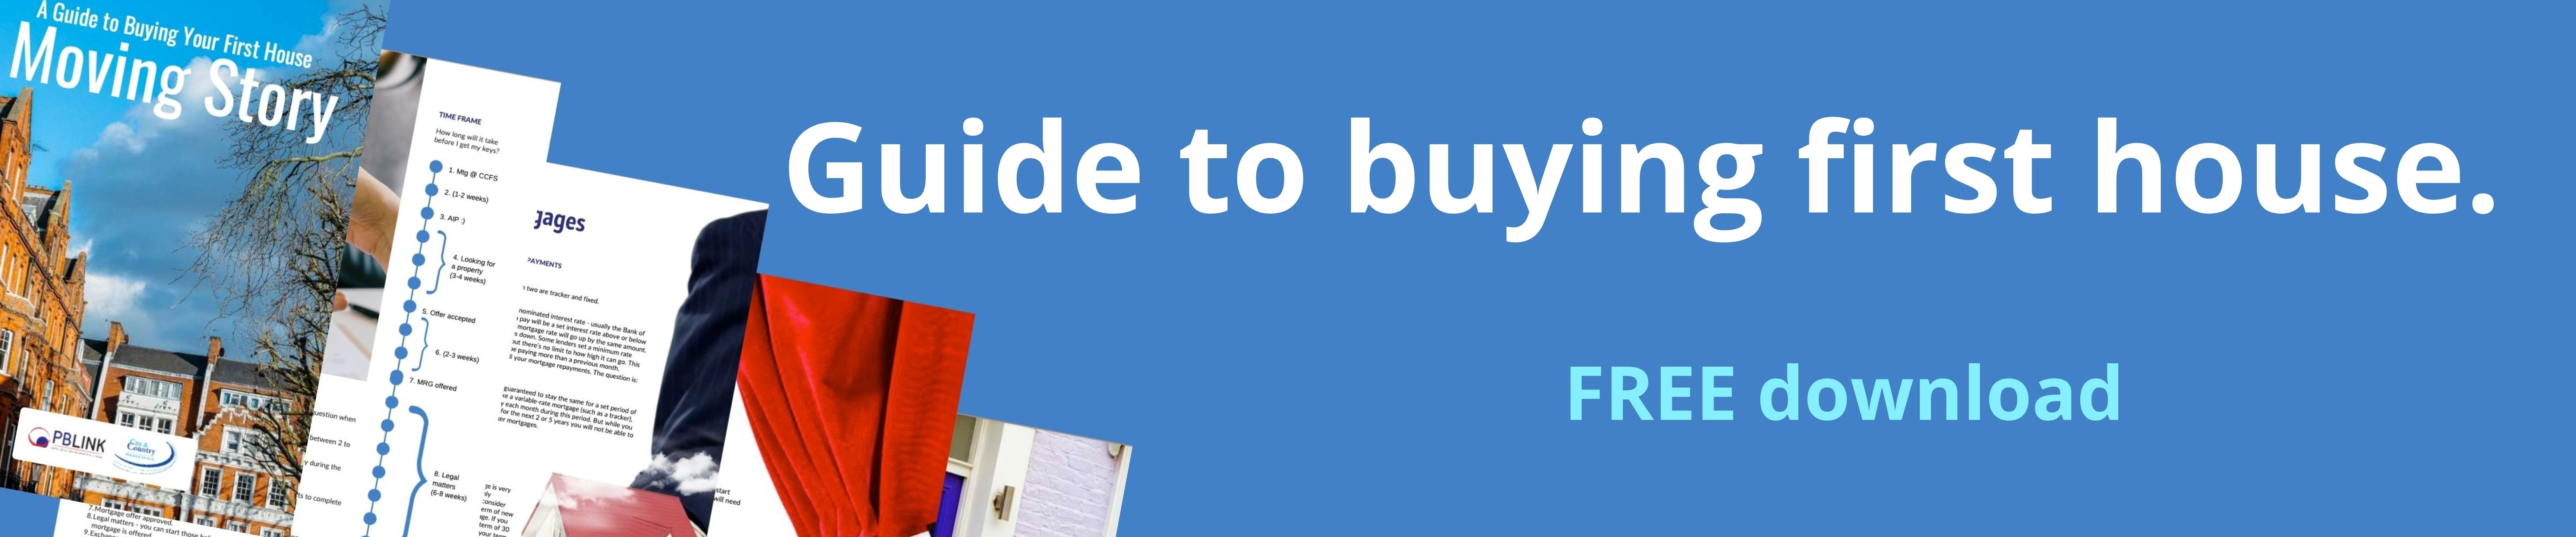 Moving Story. A Guide to Buying Your First House.